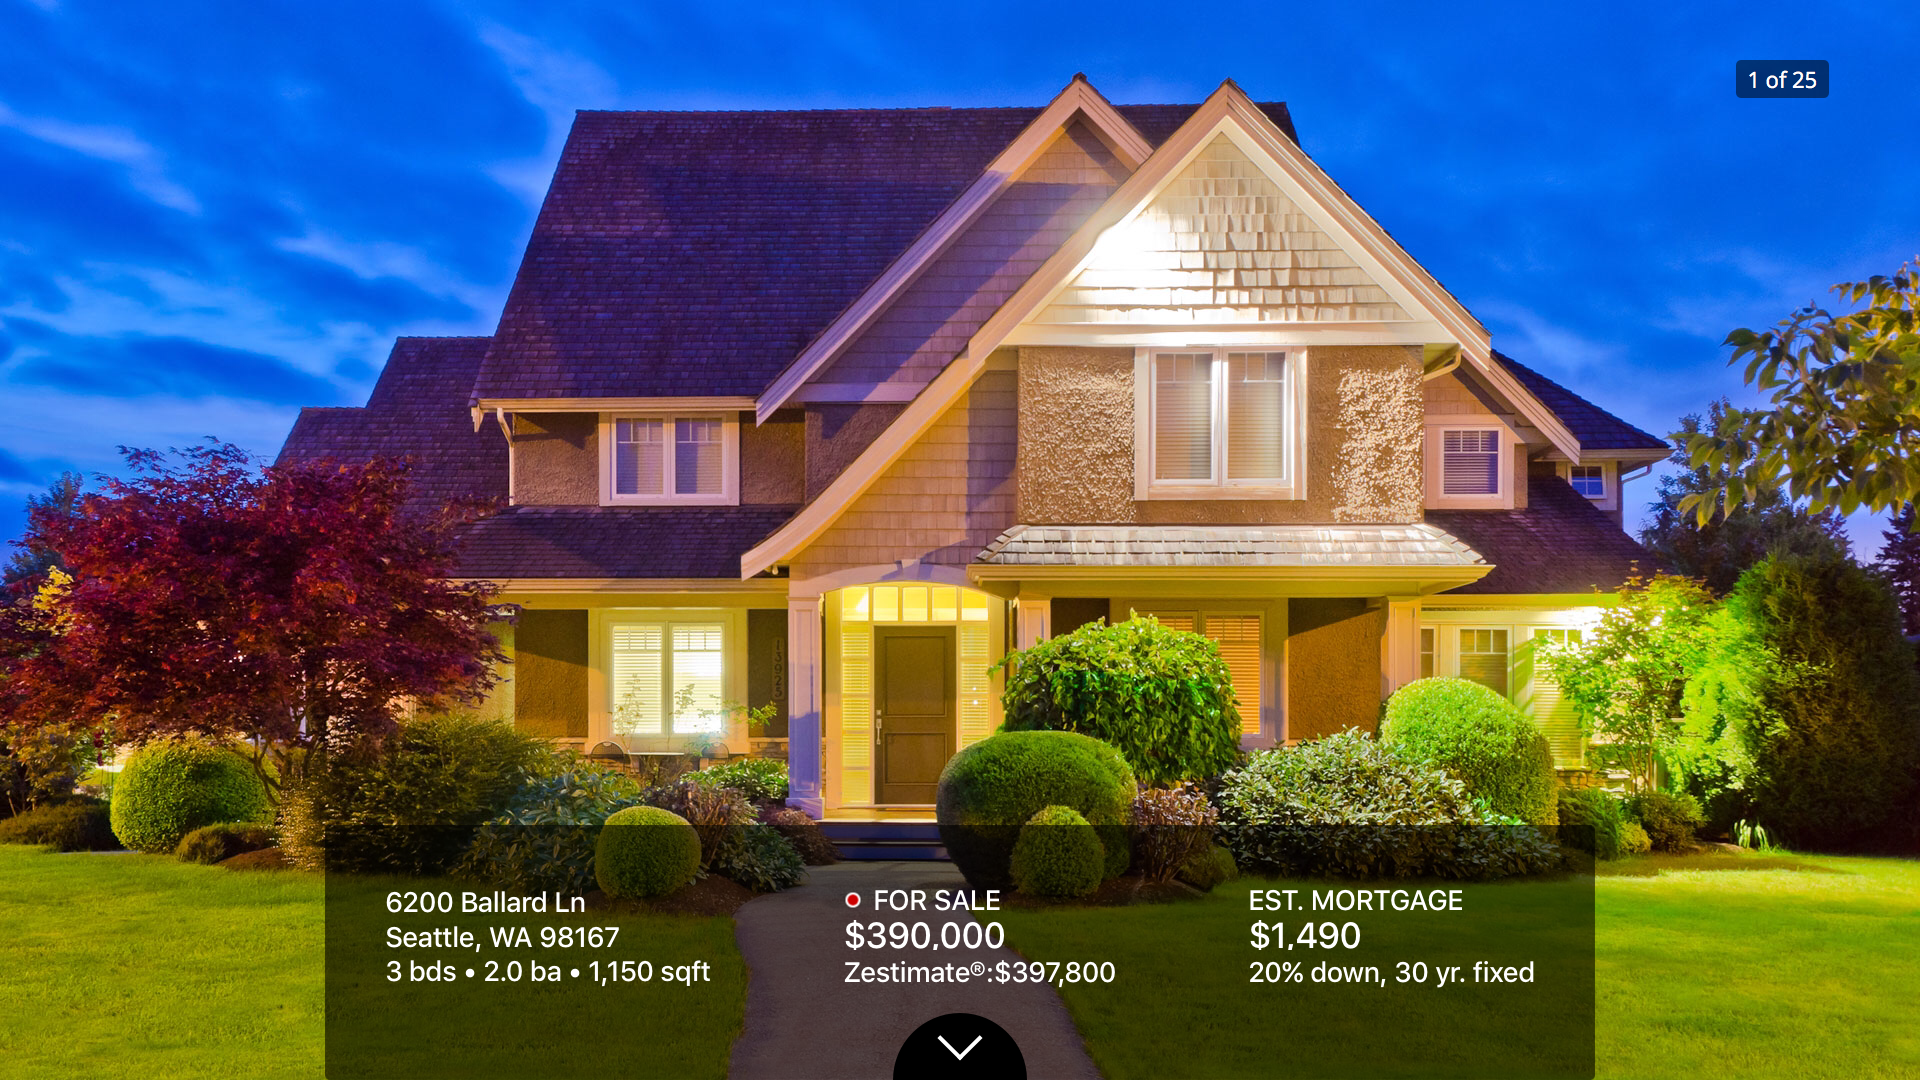 Zillow Gone Wild showcases the nations quirkiest homes